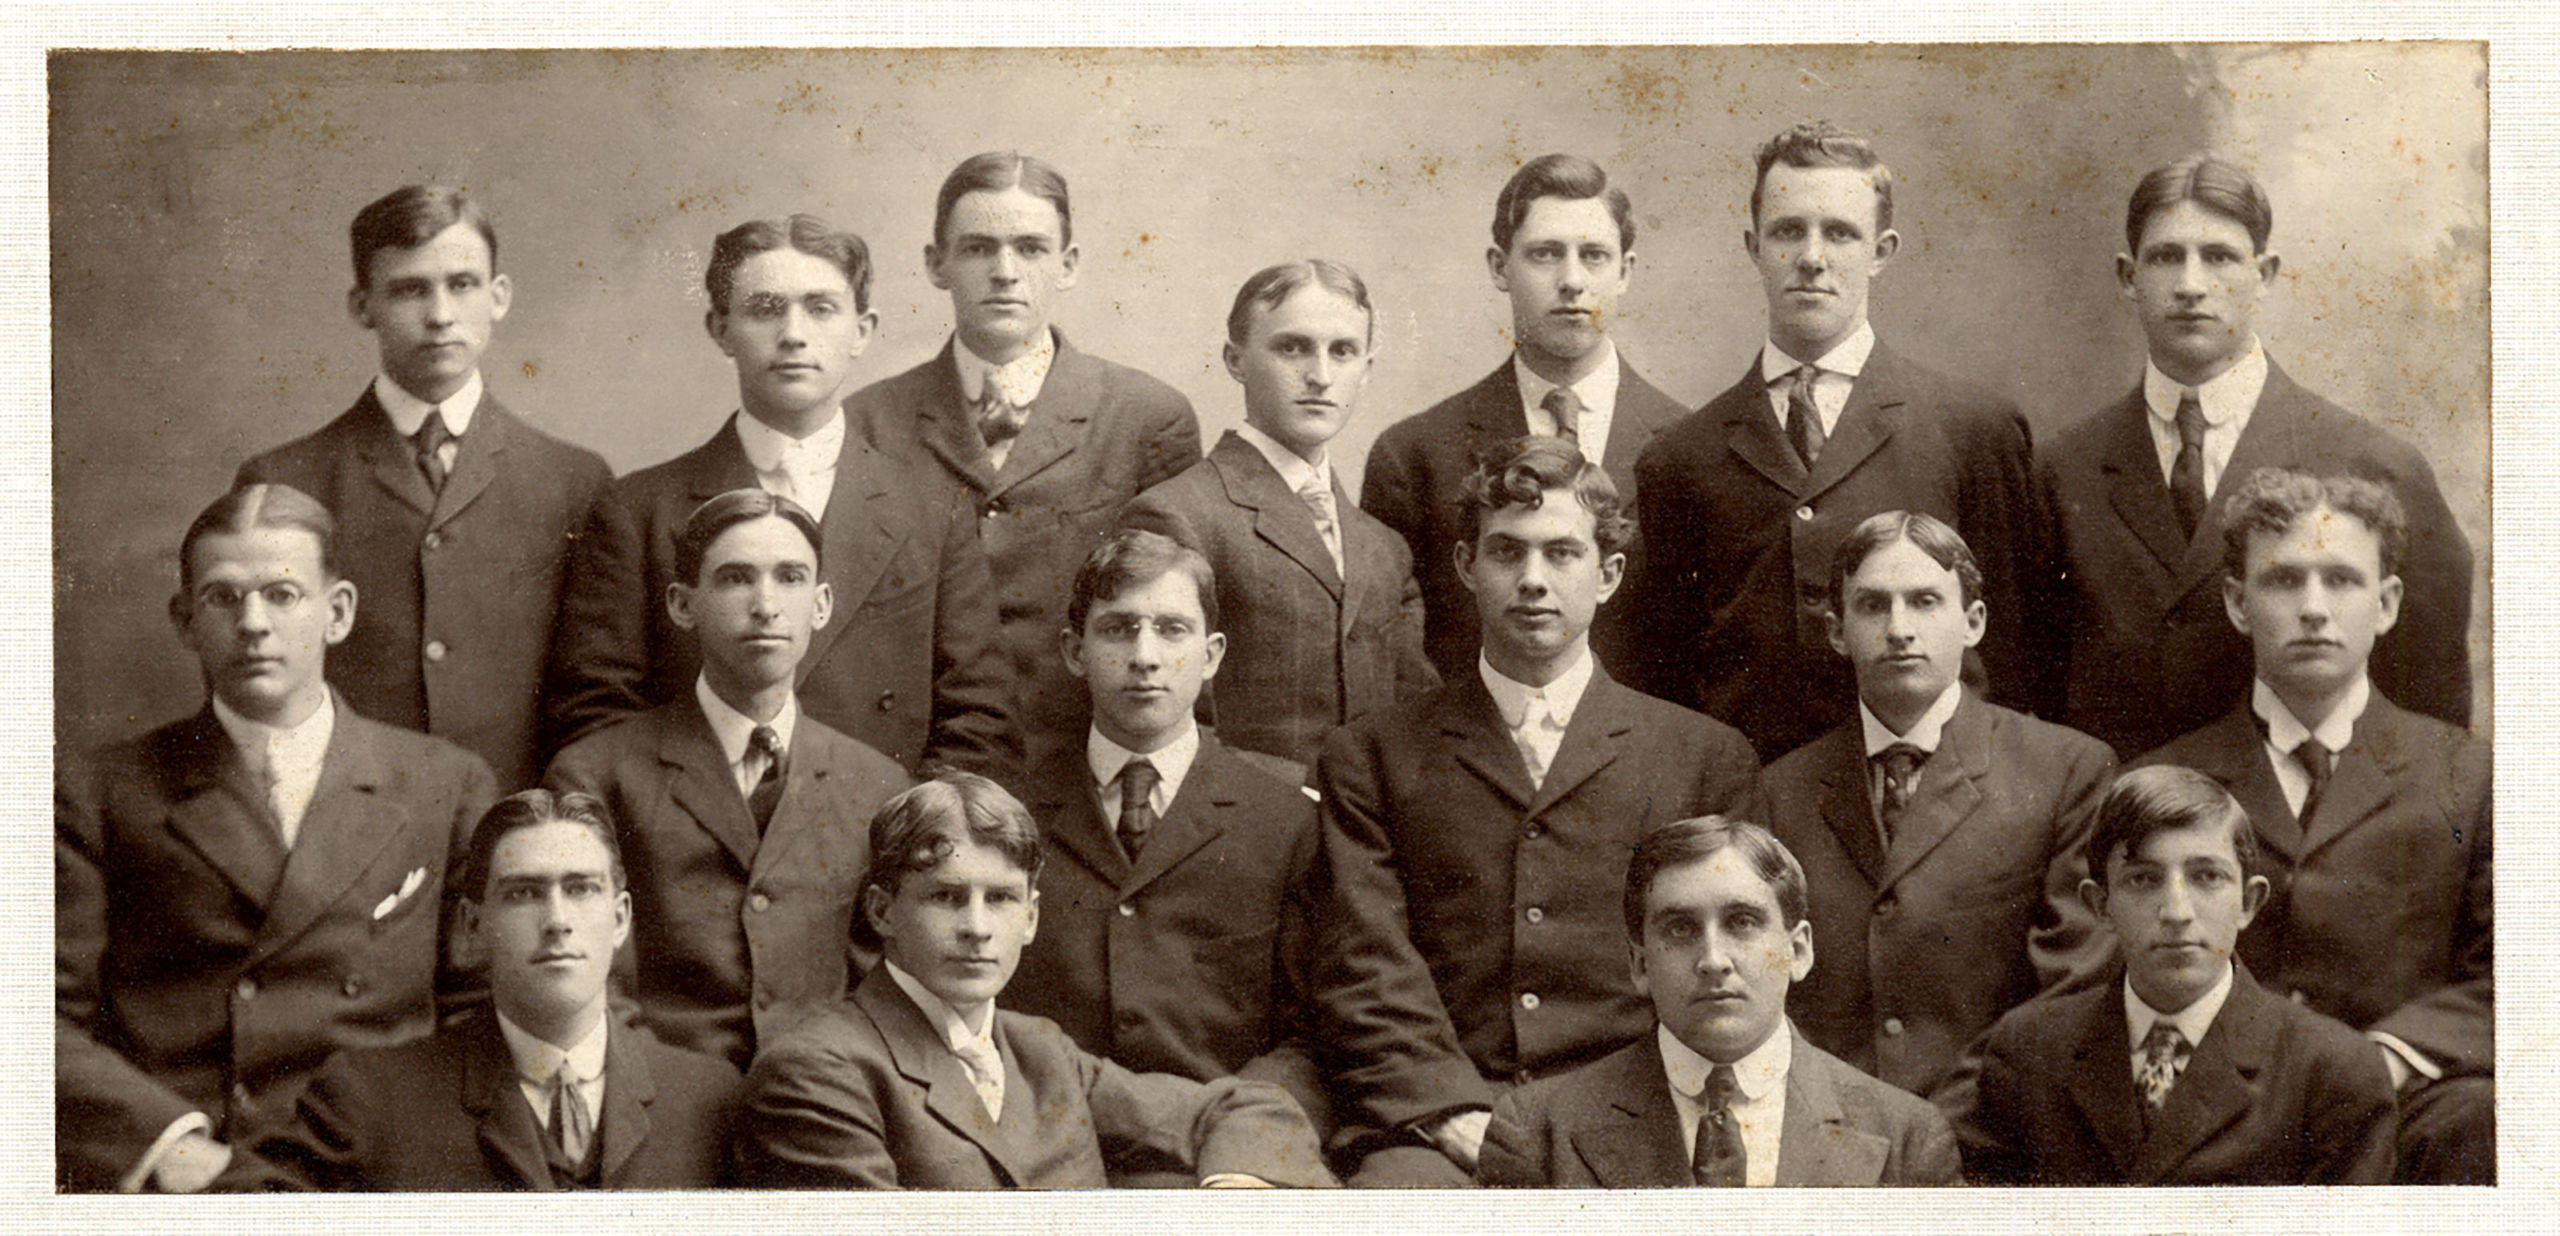 Kappa Delta Rho group photo of founders